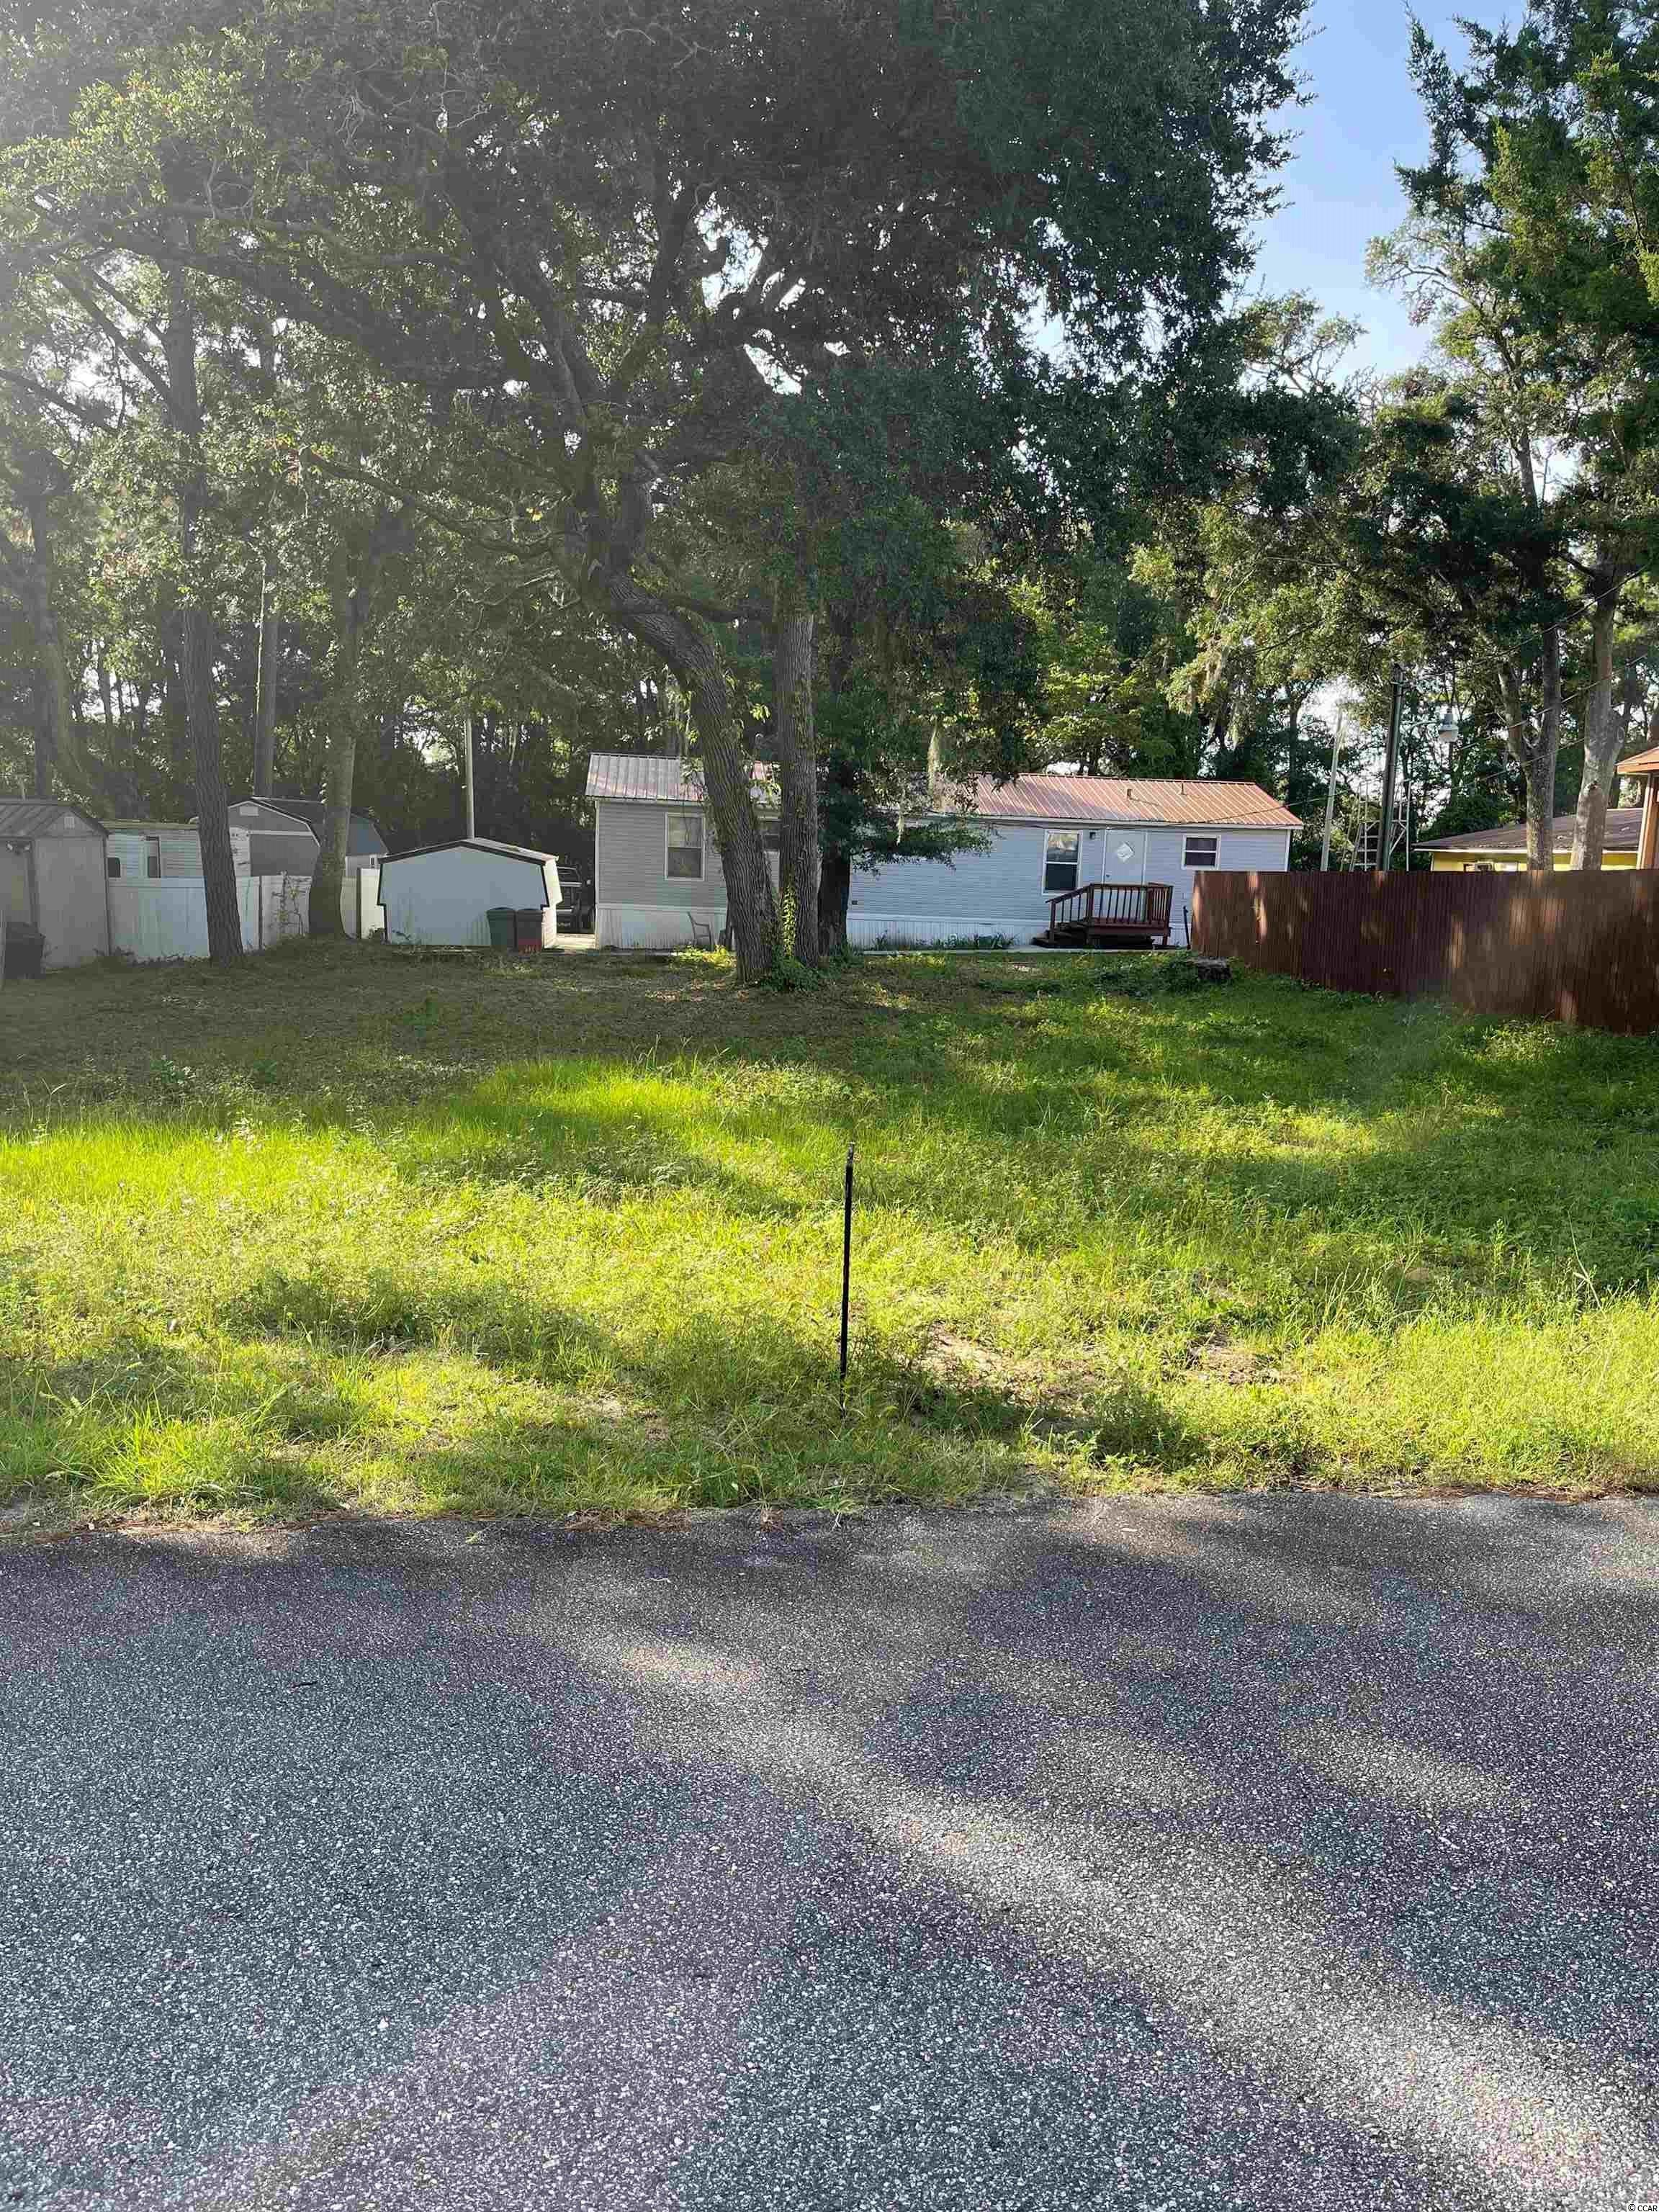 Nice lot in The Grove only a short golf cart ride to the beach, shopping, restaurants and entertainment. You can have mobile homes, modular or stick built with NO HOA's